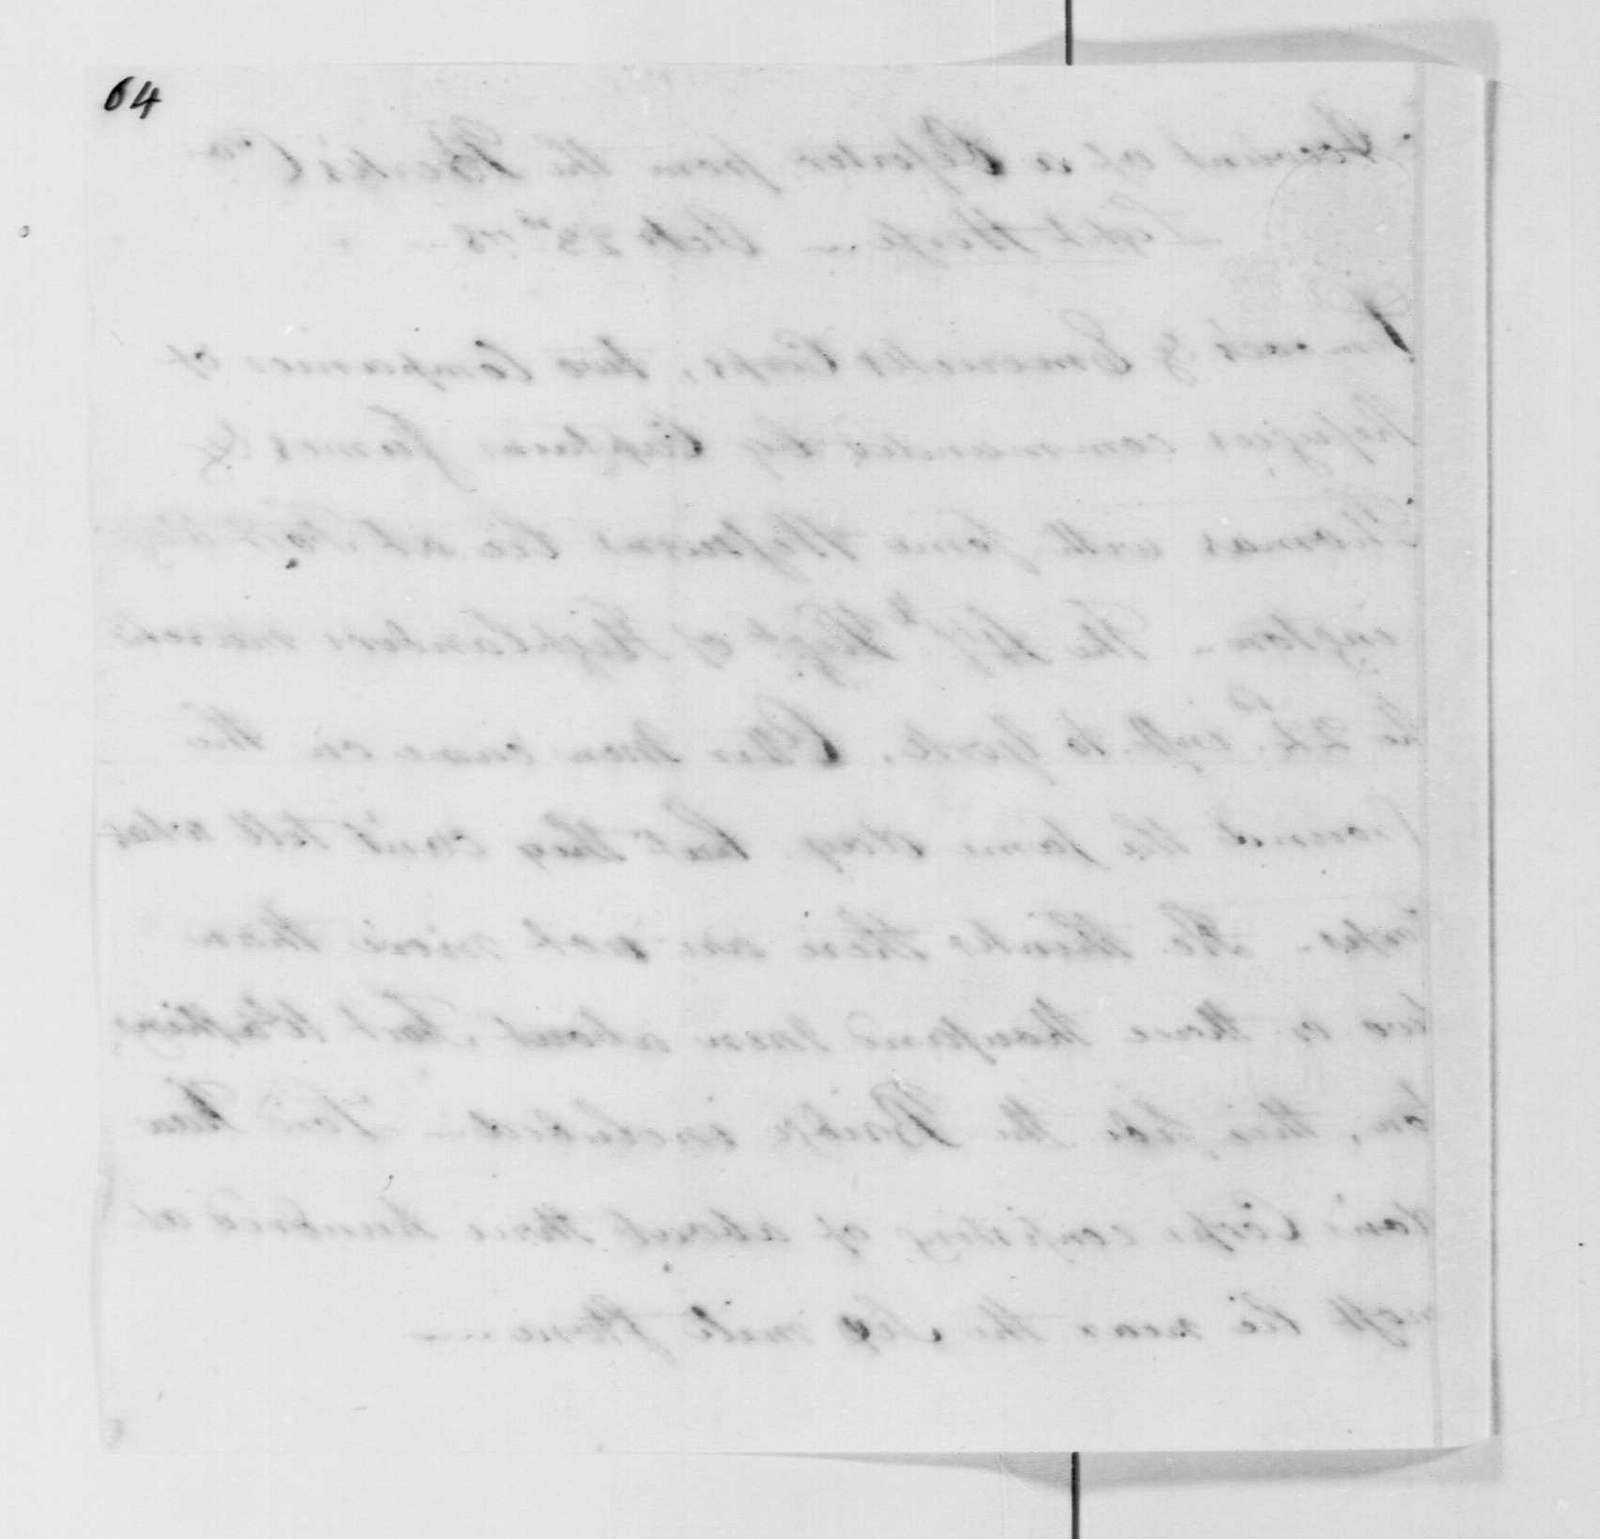 George Washington Papers, Series 4, General Correspondence: Charles Scott, October 23, 1778, Intelligence Report on British at Fort Washington